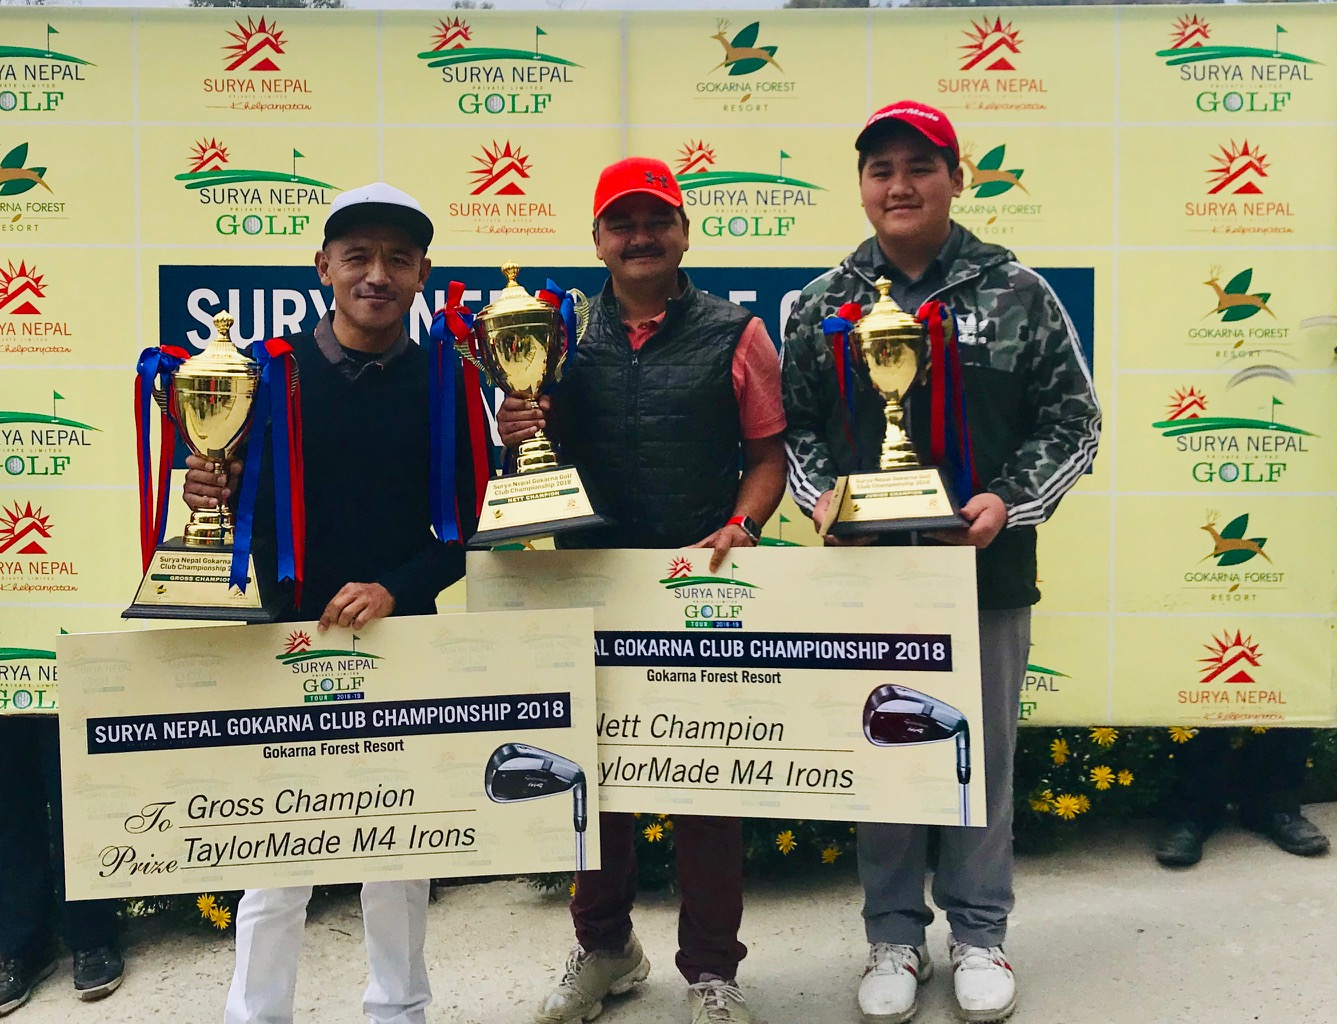 (From left) Tashi Tshiring, Dhurba Thapa and Ang Phurba Sherpa hold the Club Championship trophies after the Surya Nepal Gokarna Monthly Medal on Saturday, February 16, 2019. Photo: THT